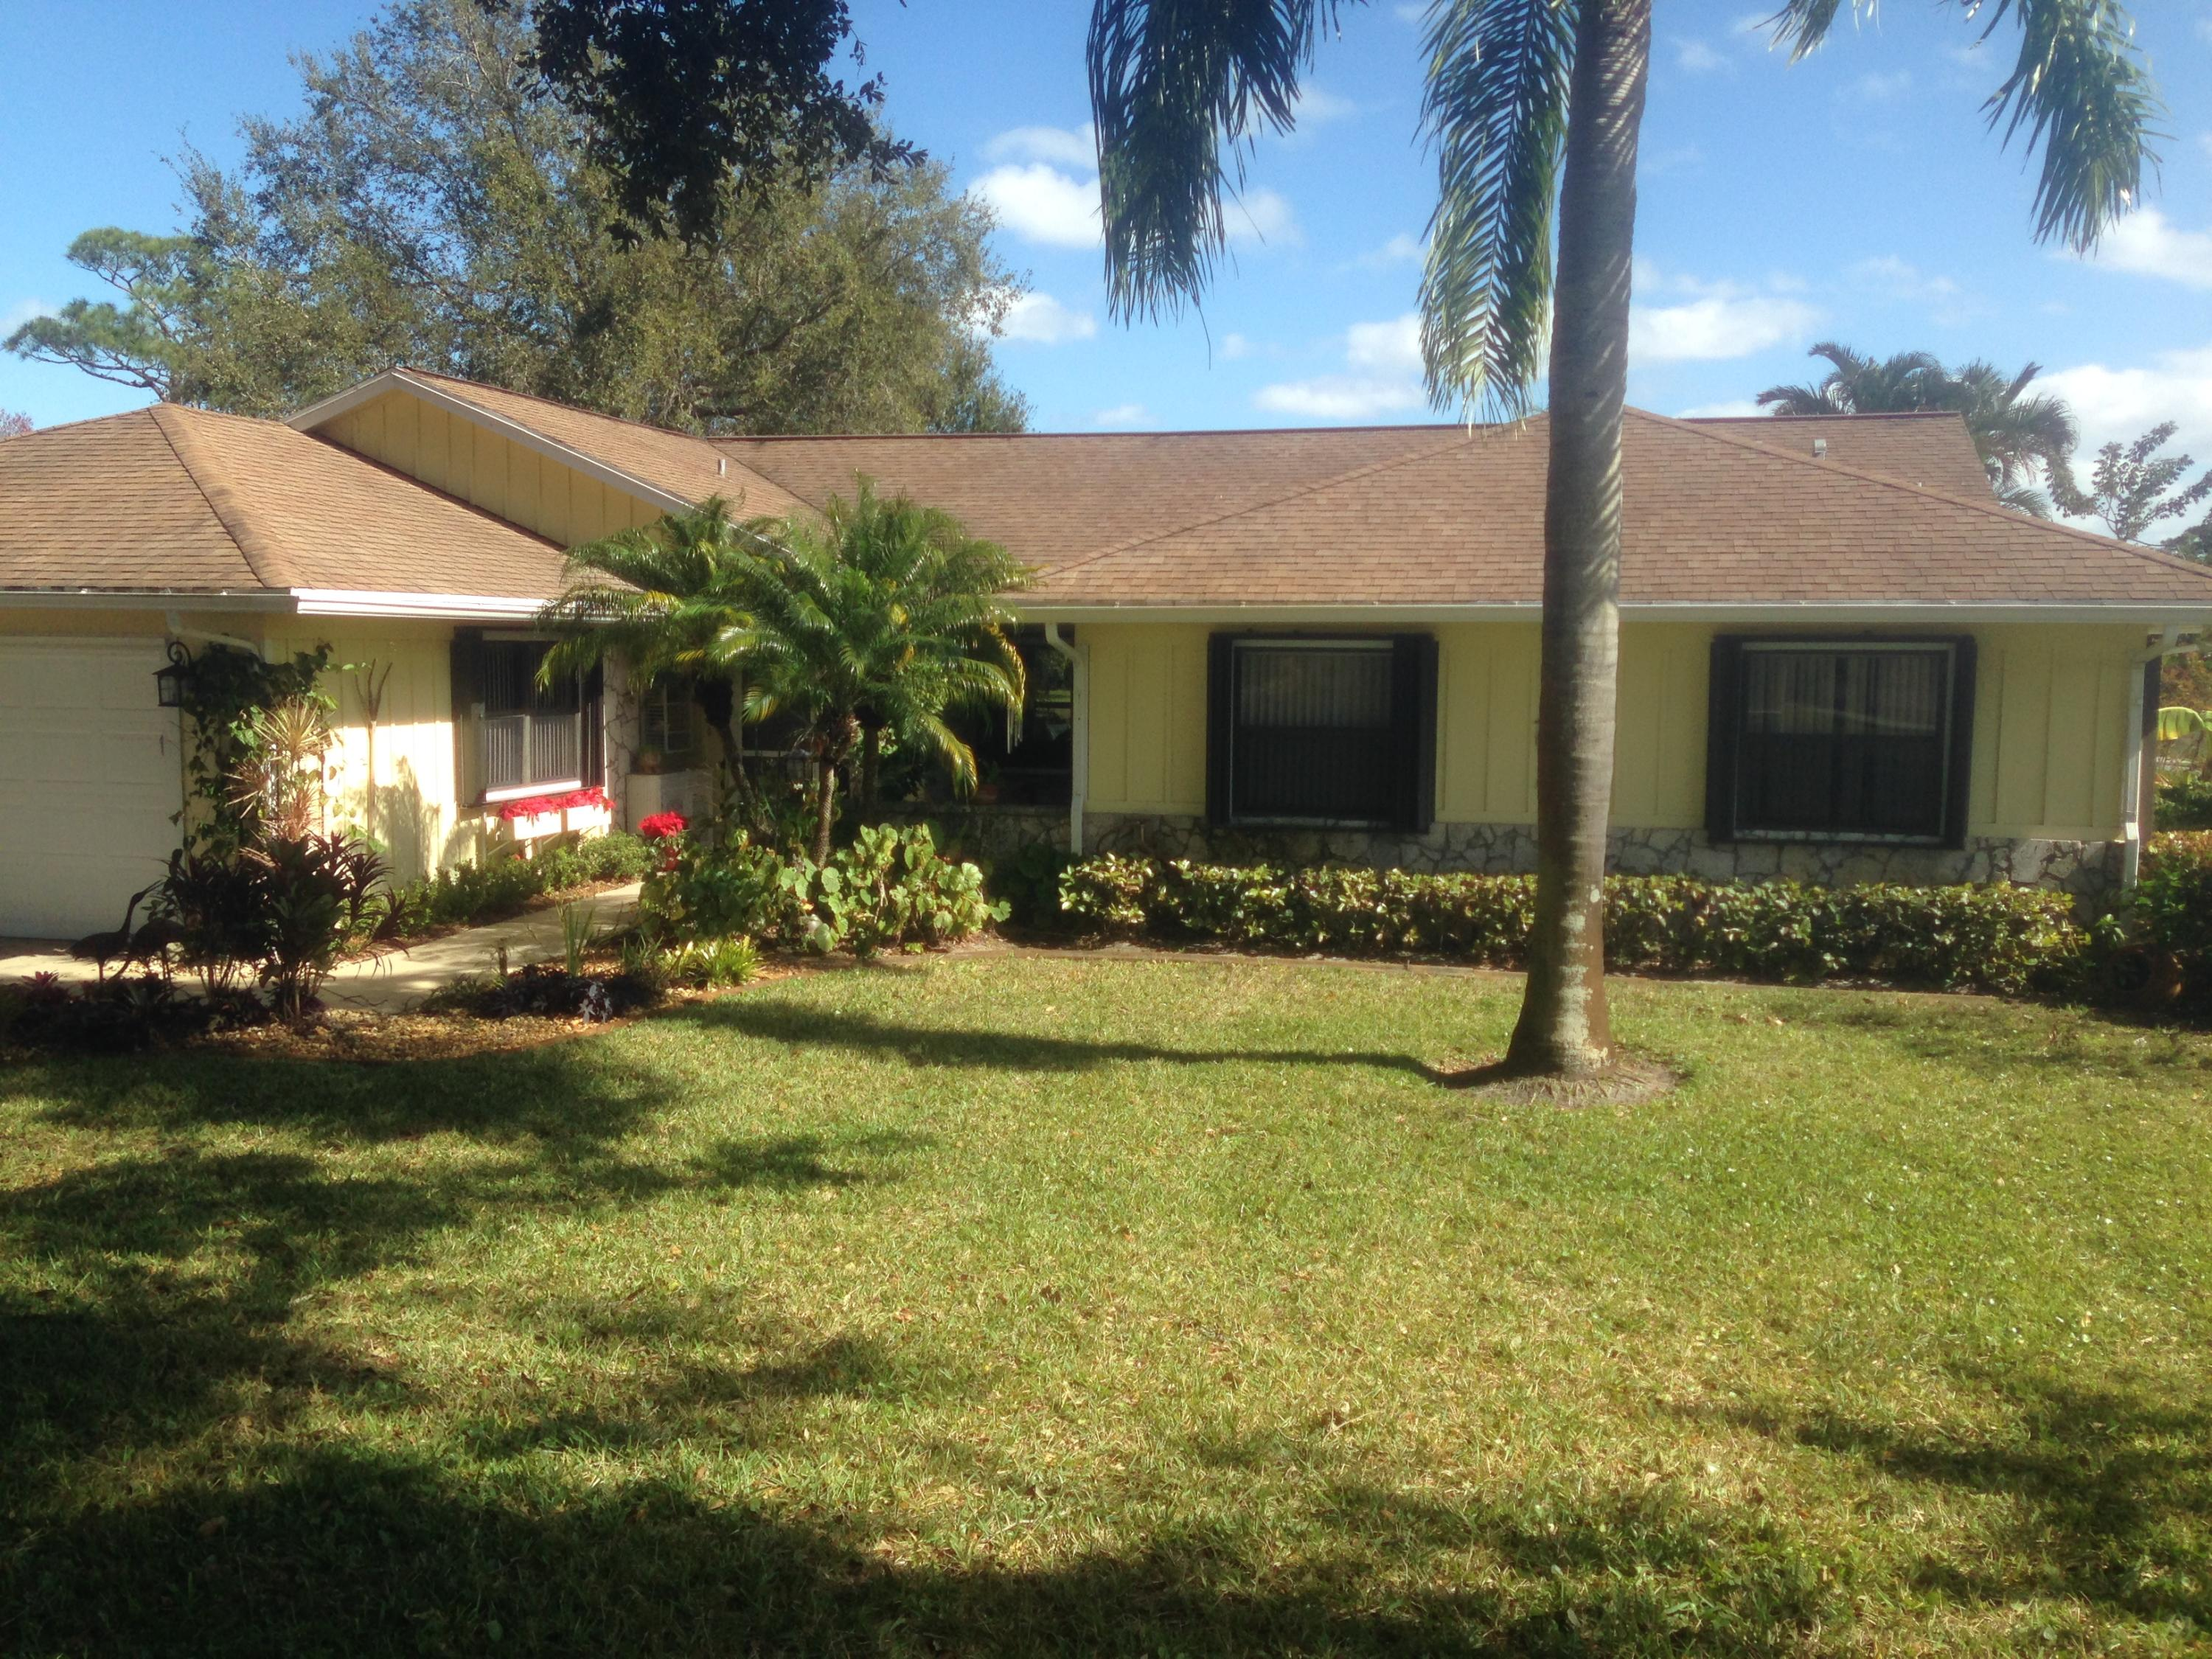 13199 Spyglass Court, Hobe Sound, Florida 33455, 3 Bedrooms Bedrooms, ,2.1 BathroomsBathrooms,A,Single family,Spyglass,RX-10499201